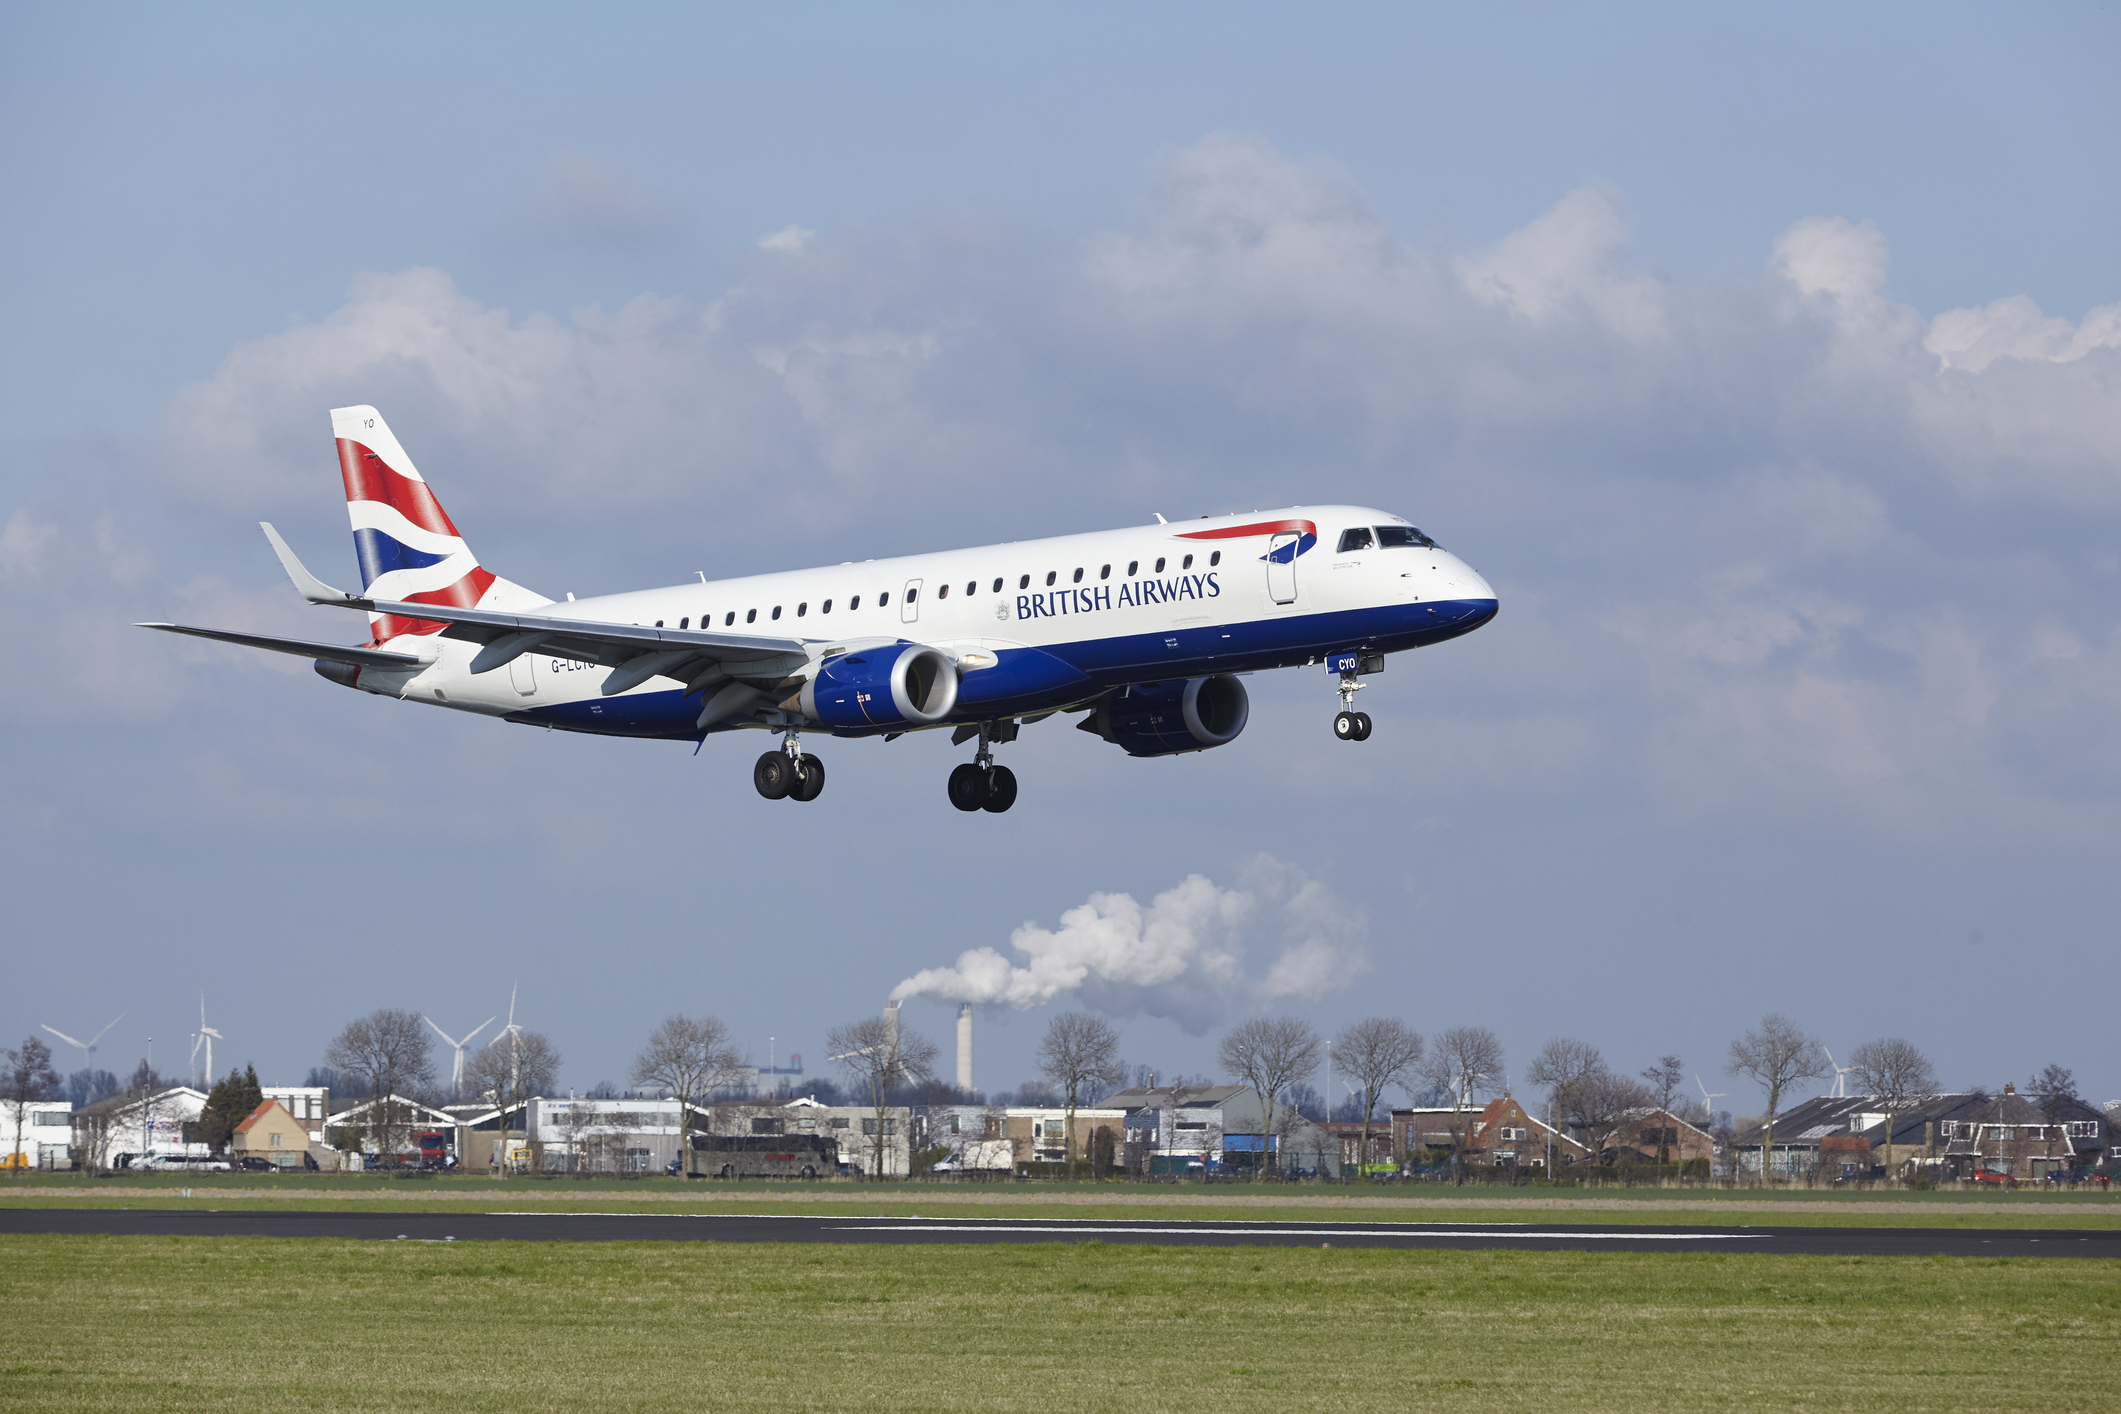 British Airways credit card can get you up to 2 FREE flights!